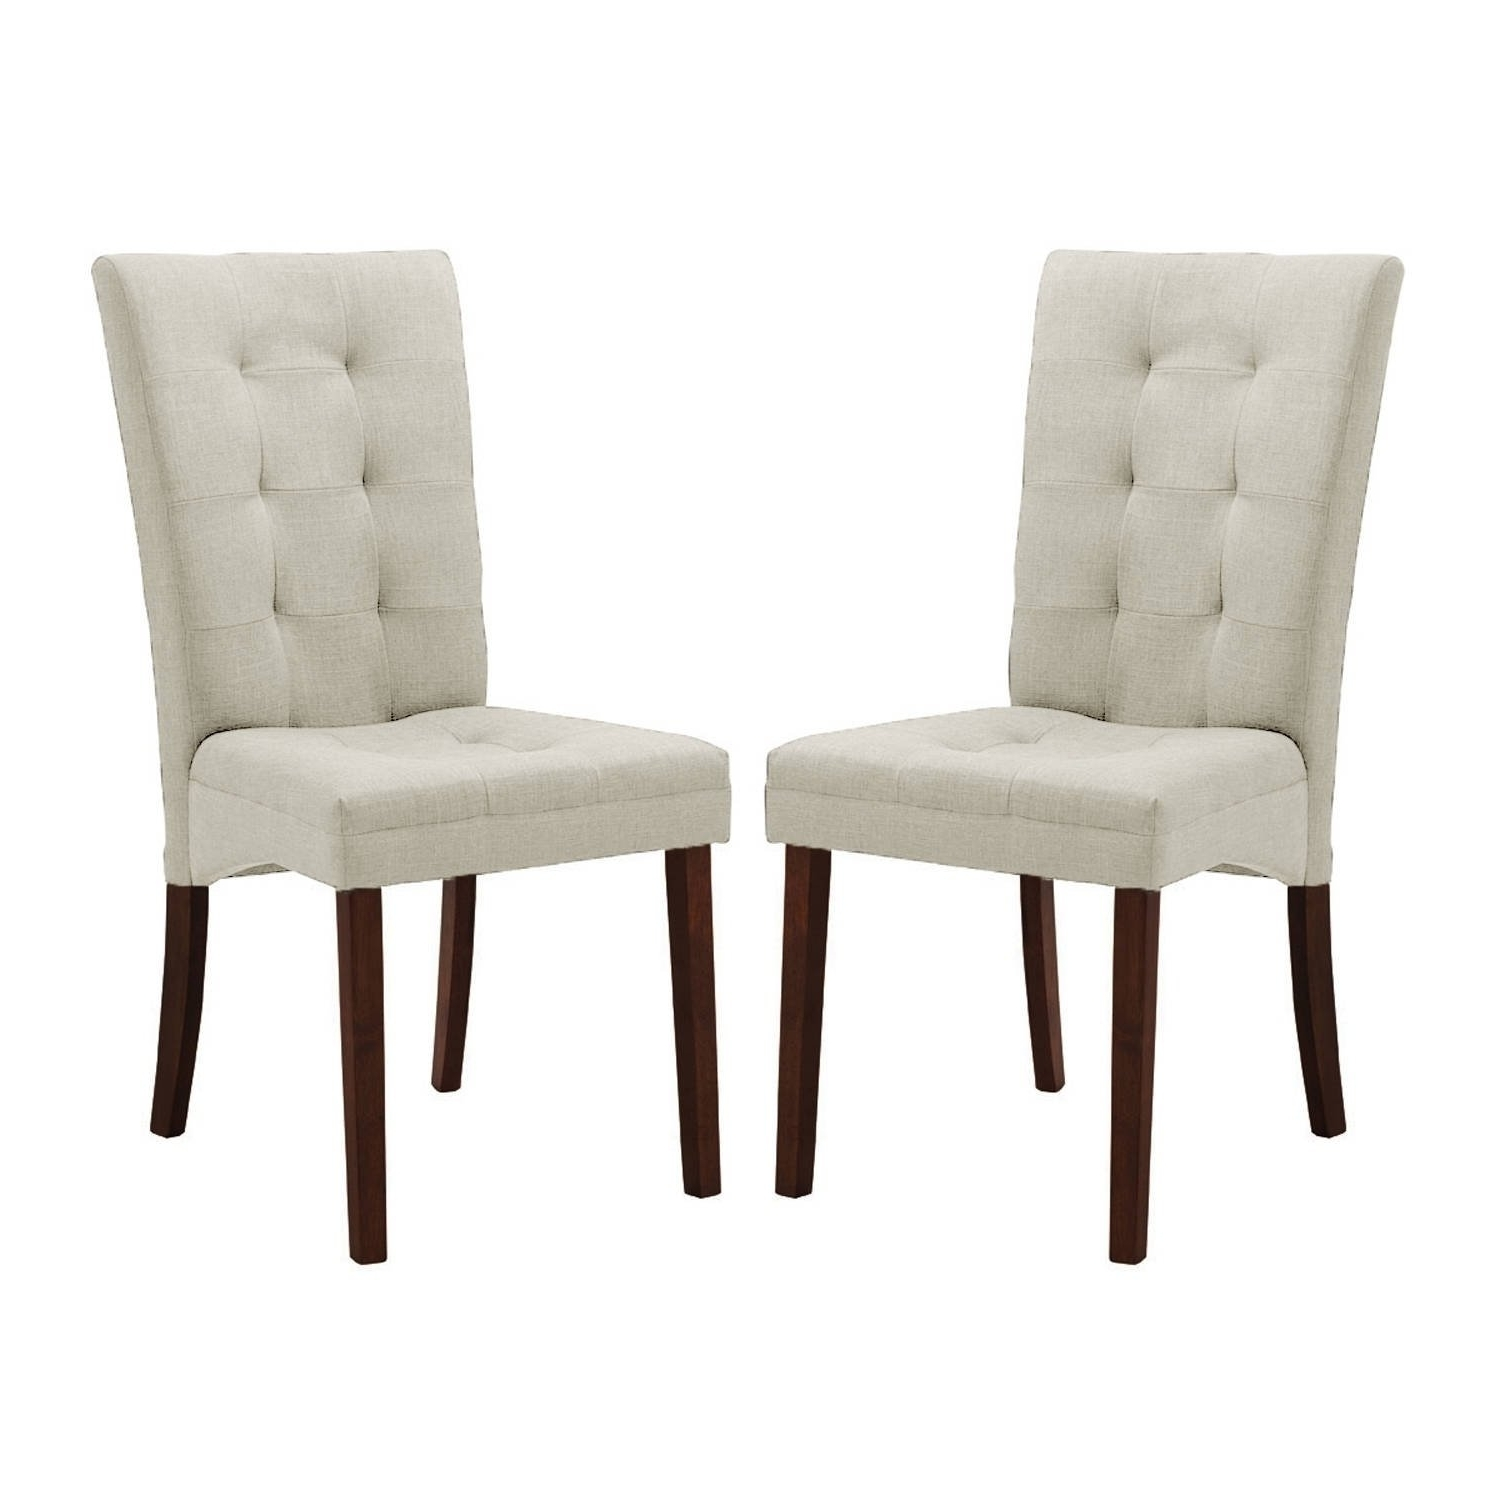 Newest Fabric Covered Dining Chairs In Shop Contemporary Beige Fabric Dining Chair 2 Piece Setbaxton (View 3 of 25)